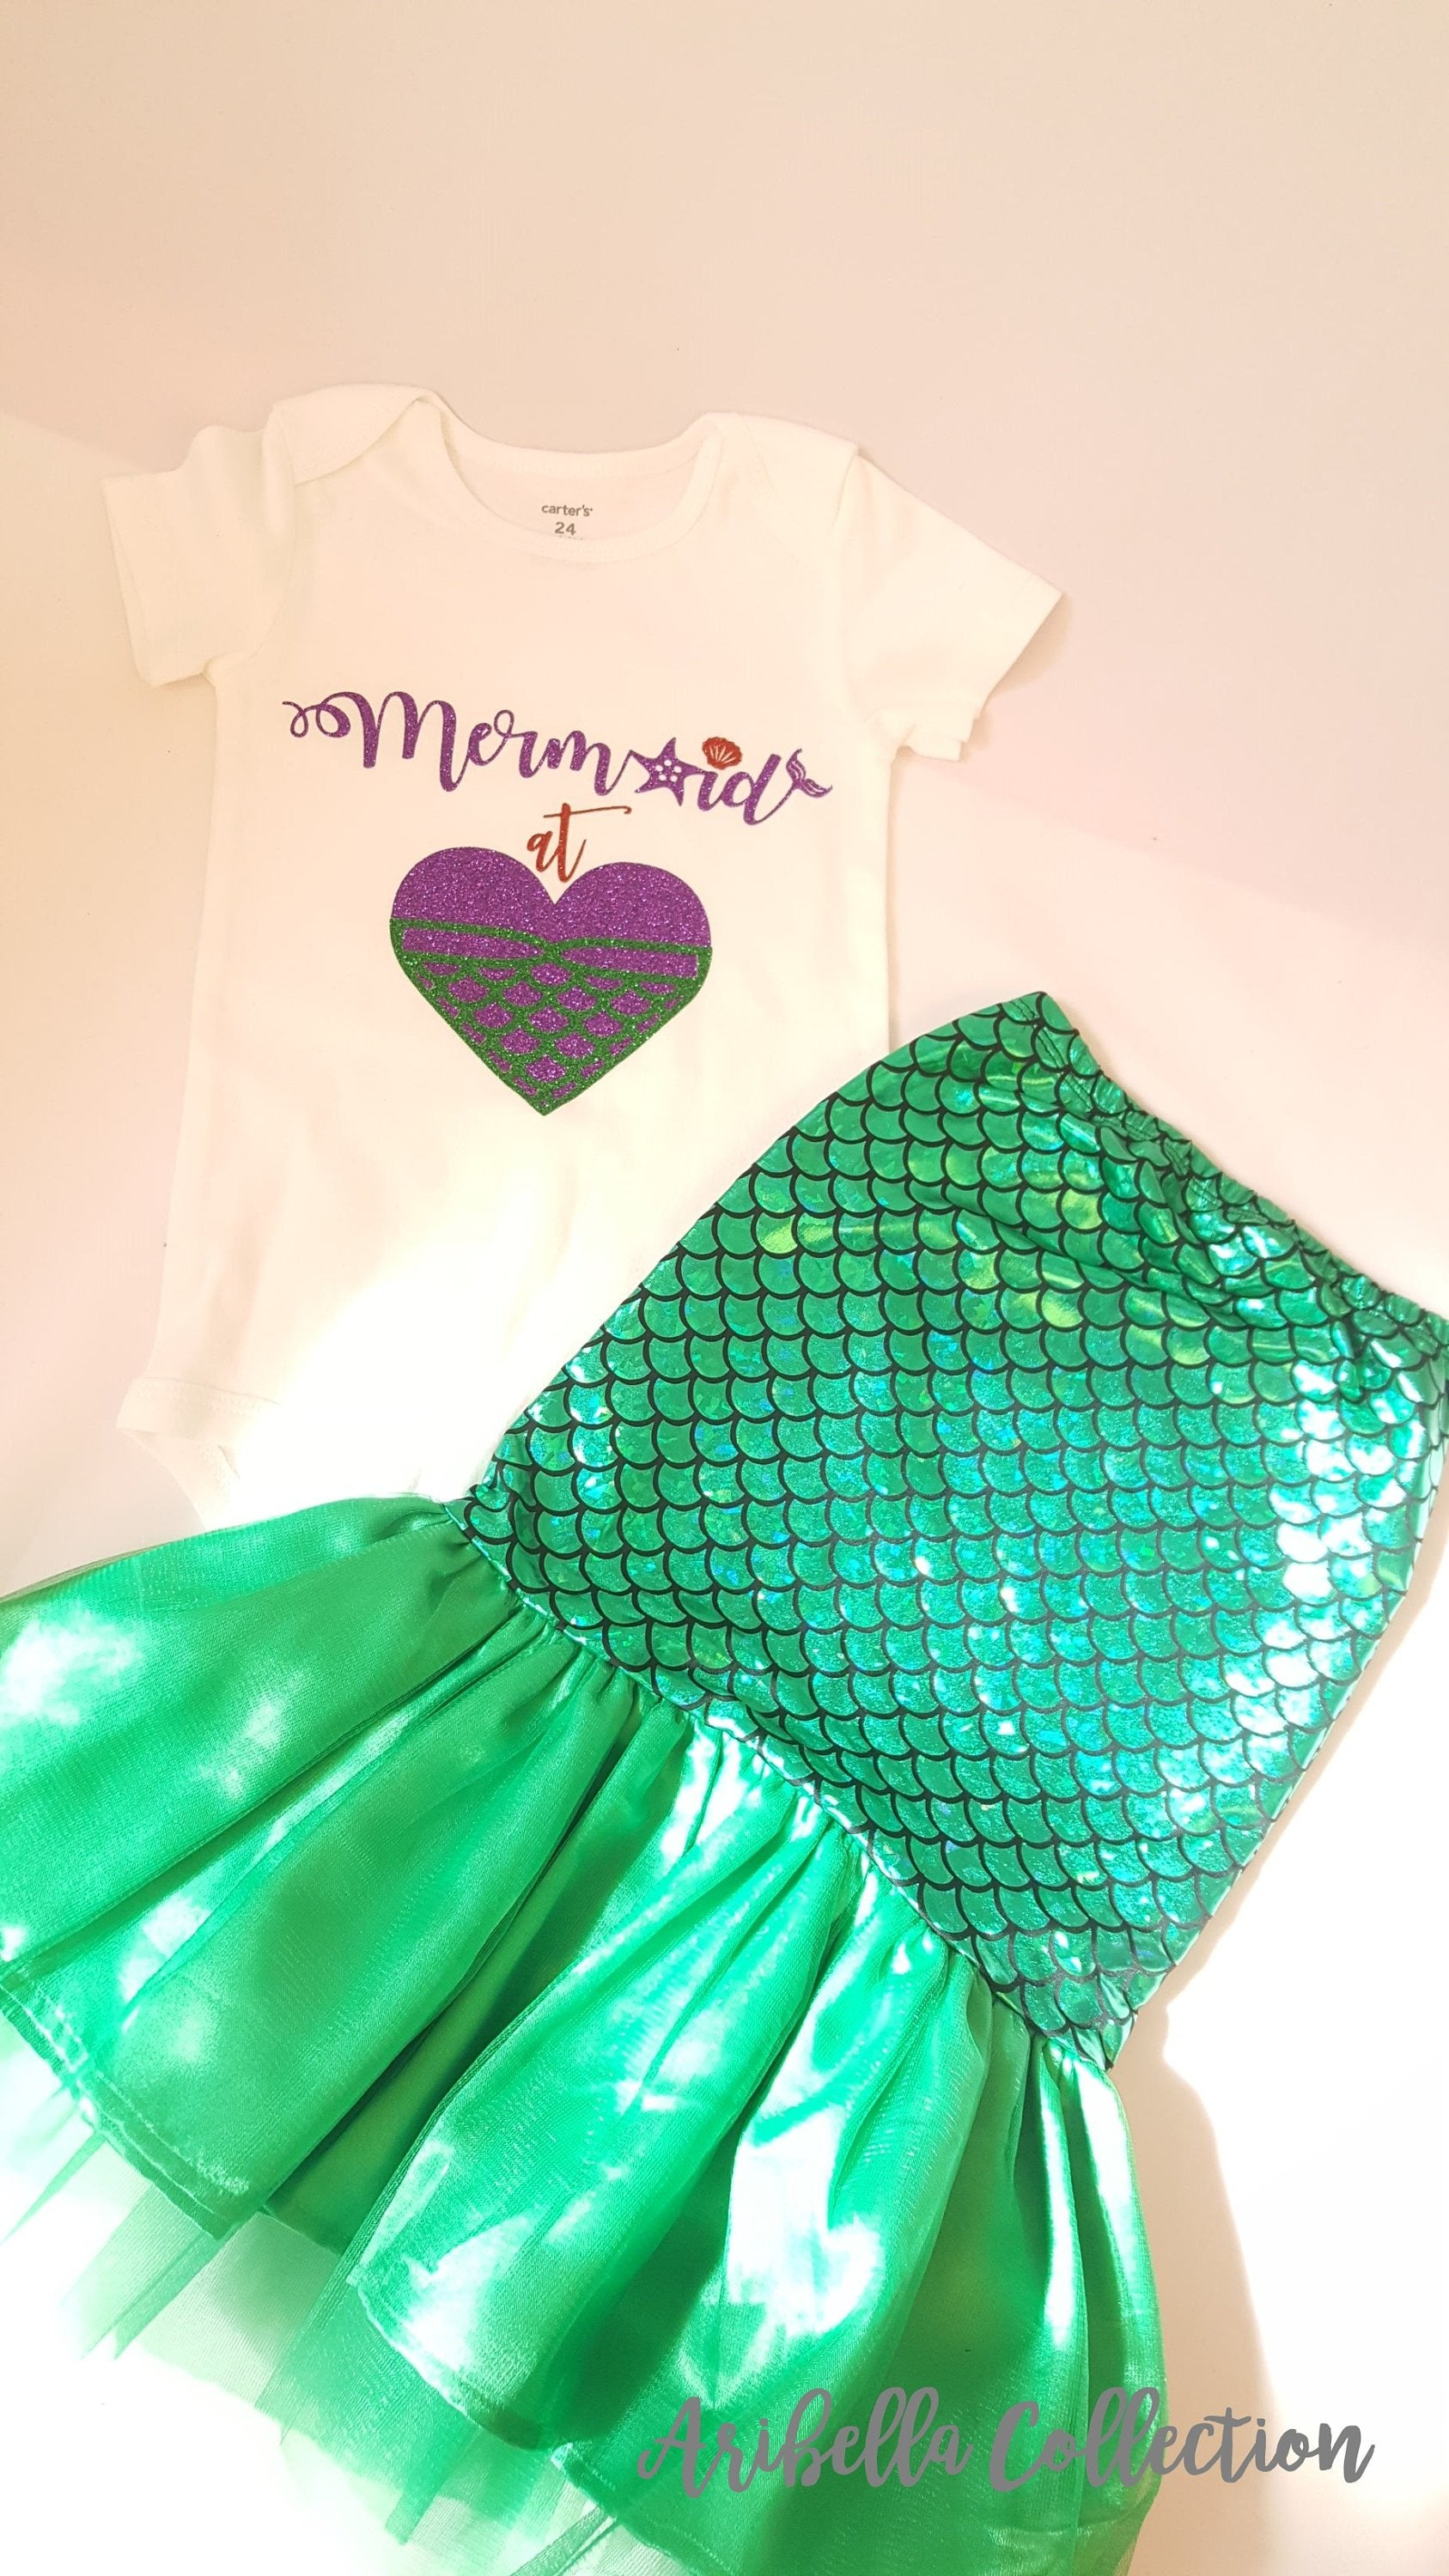 Mermaid At Heart Bodysuit or T-shirt, Skirt, & Hair Clip Bow Outfit - Aribella Collection